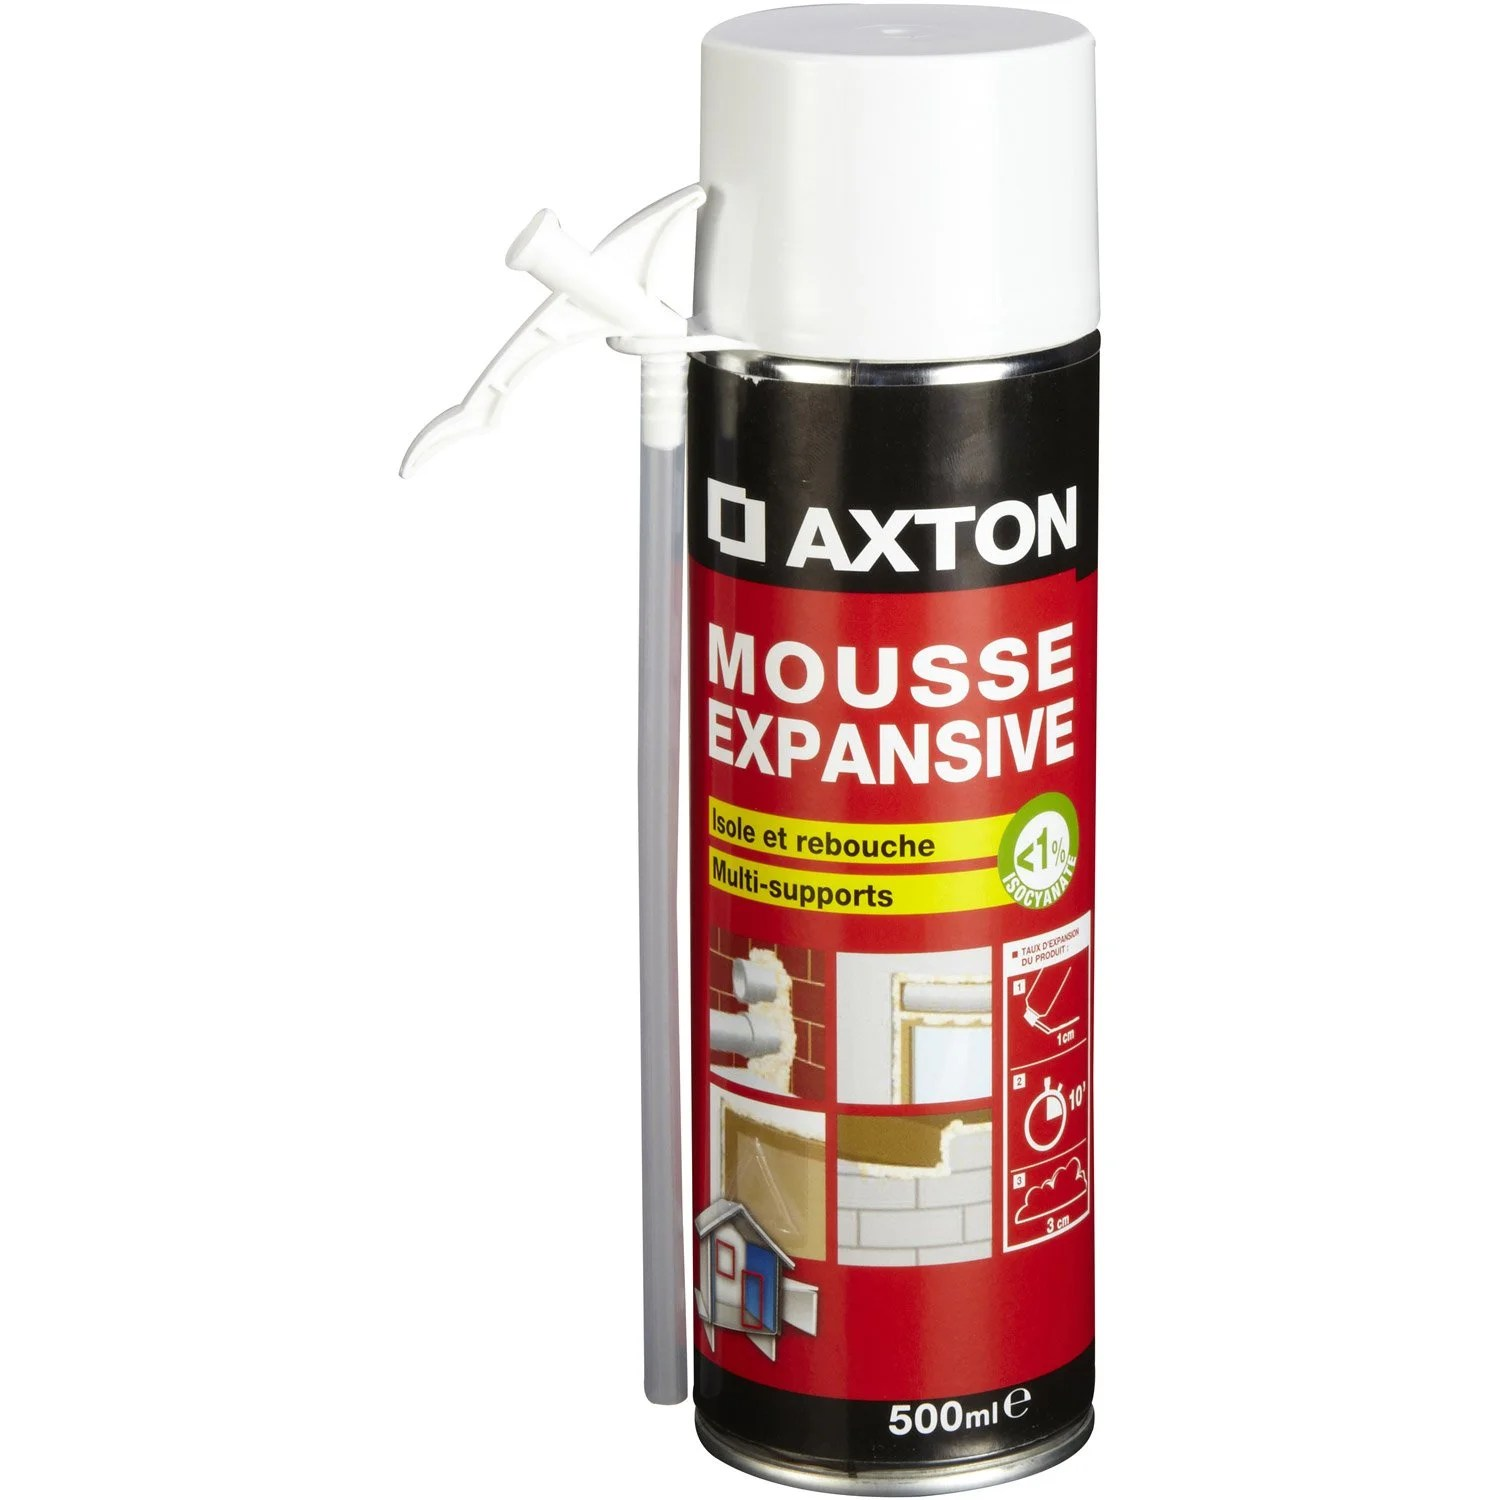 Spray Pintura Coche Leroy Merlin Mousse Expansive Axton L 65 X L 240 X Ep 65 Mm 500 Ml